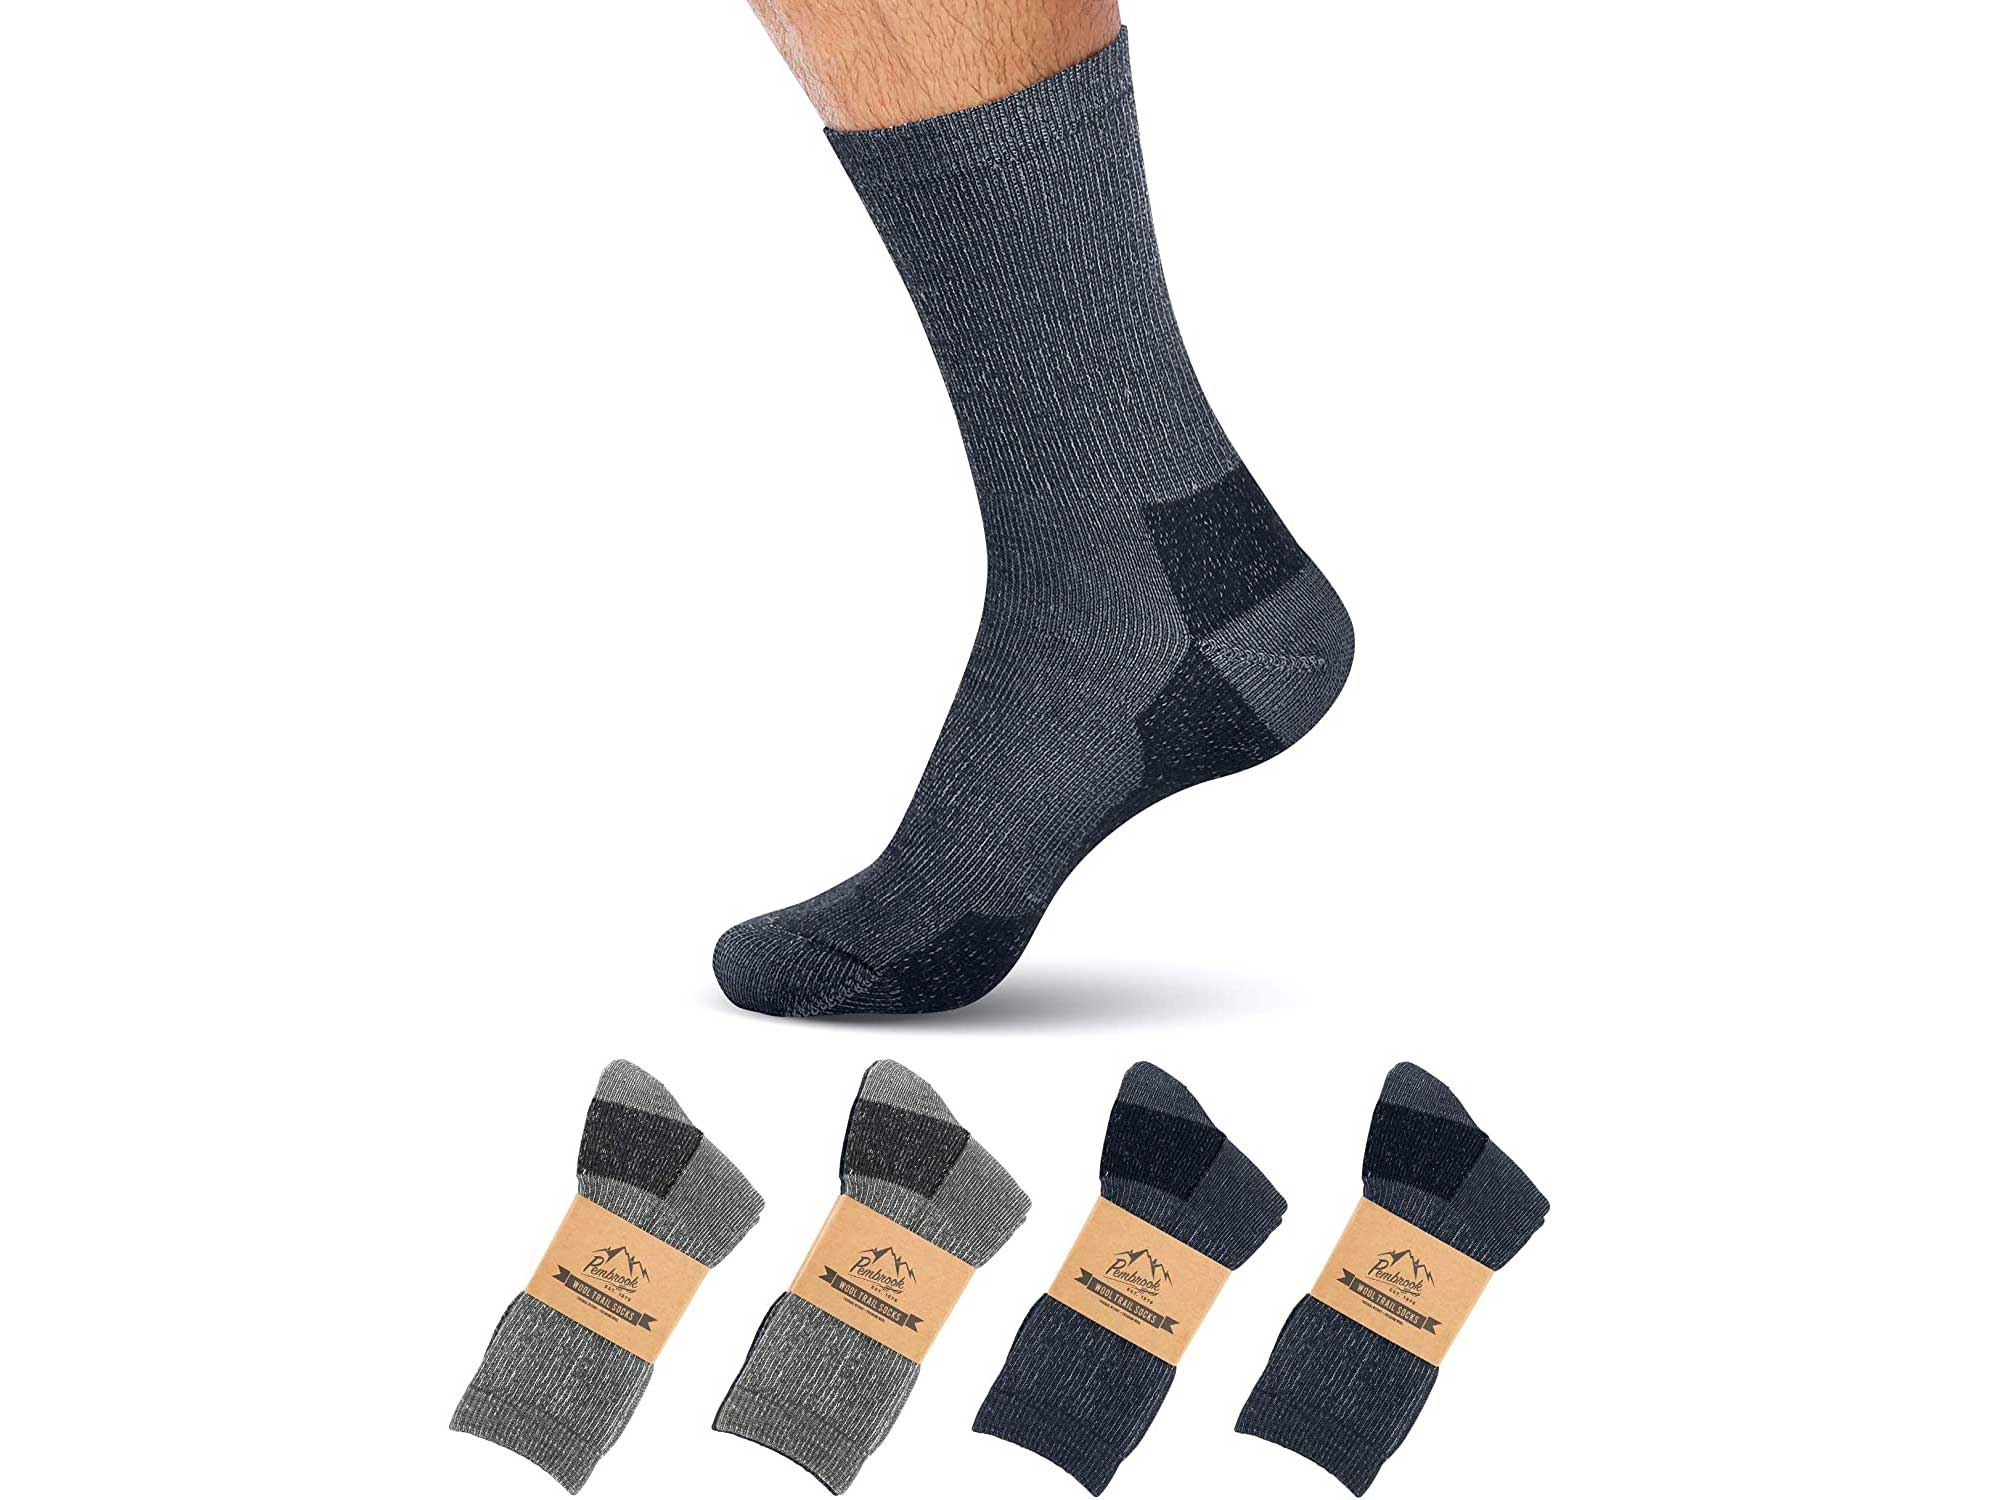 Pembrook Merino are the best warm socks on a budget